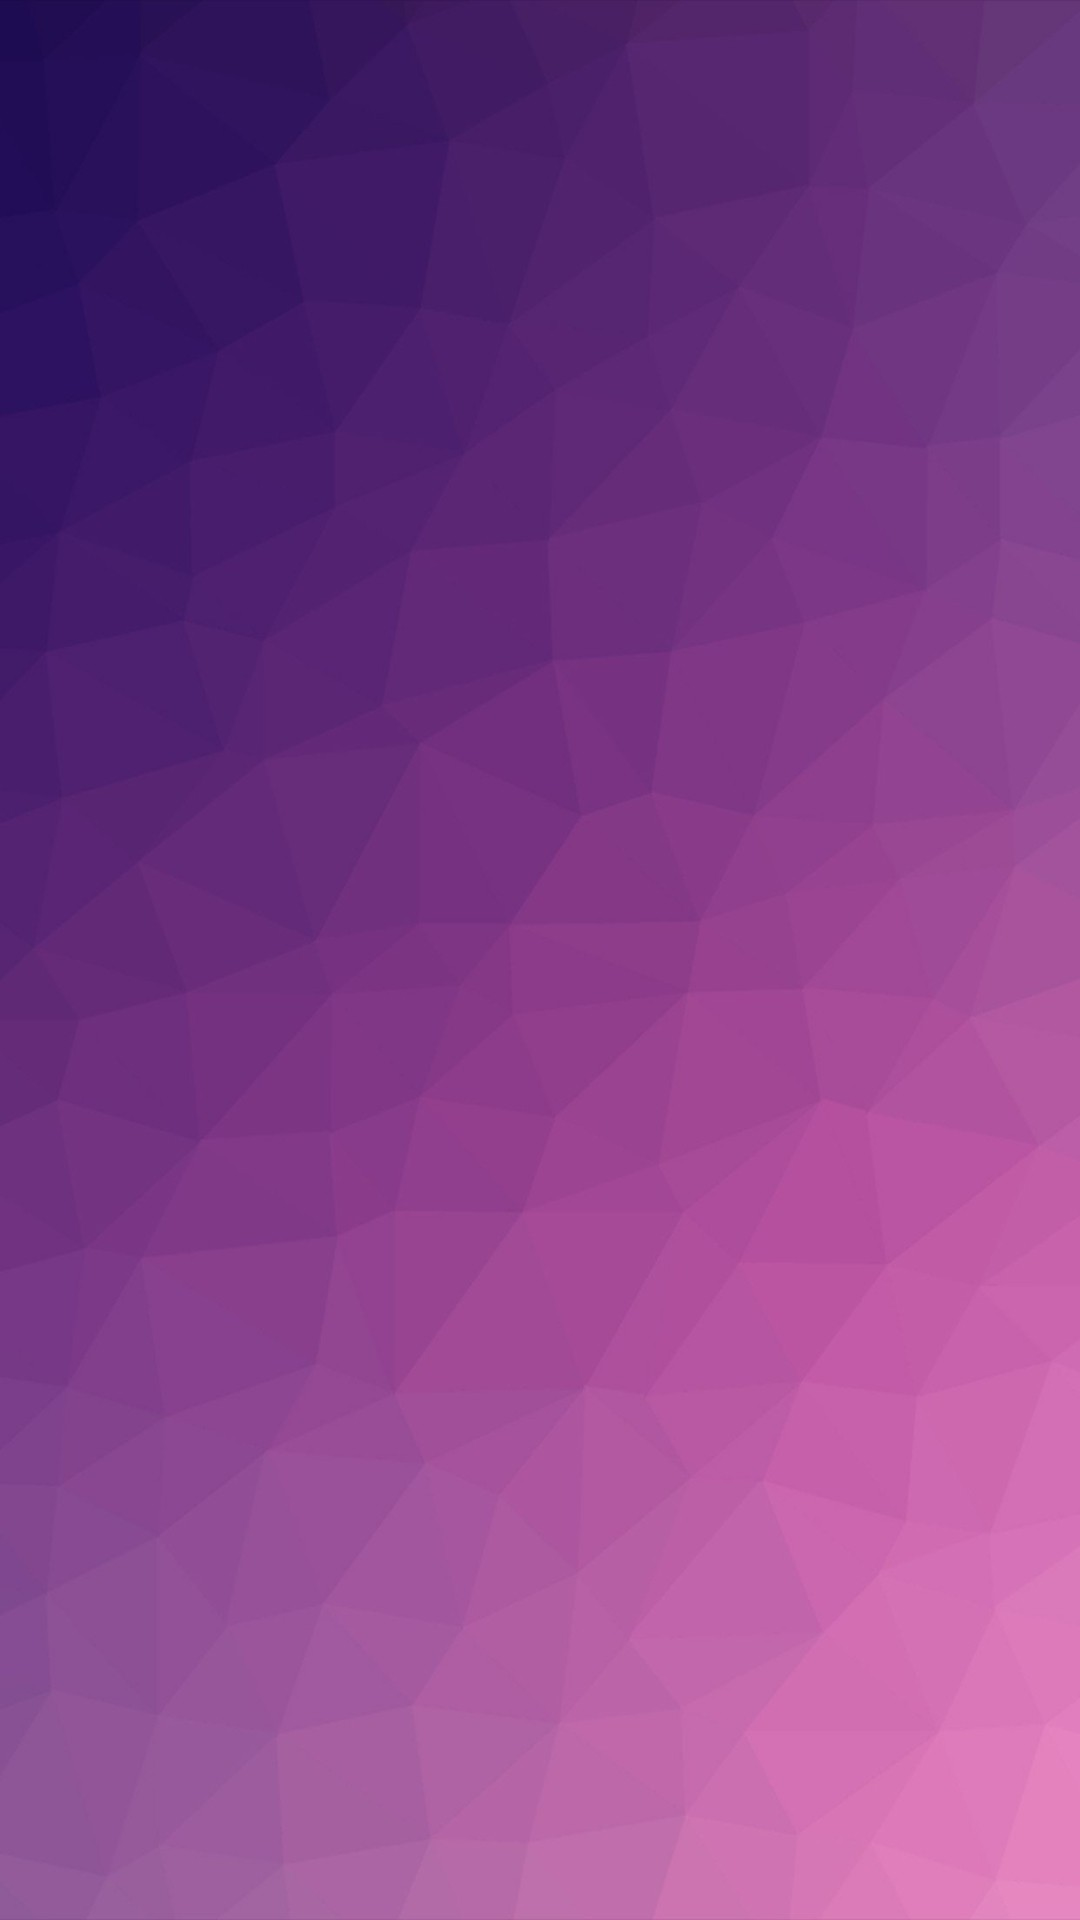 Best wallpapers for mac